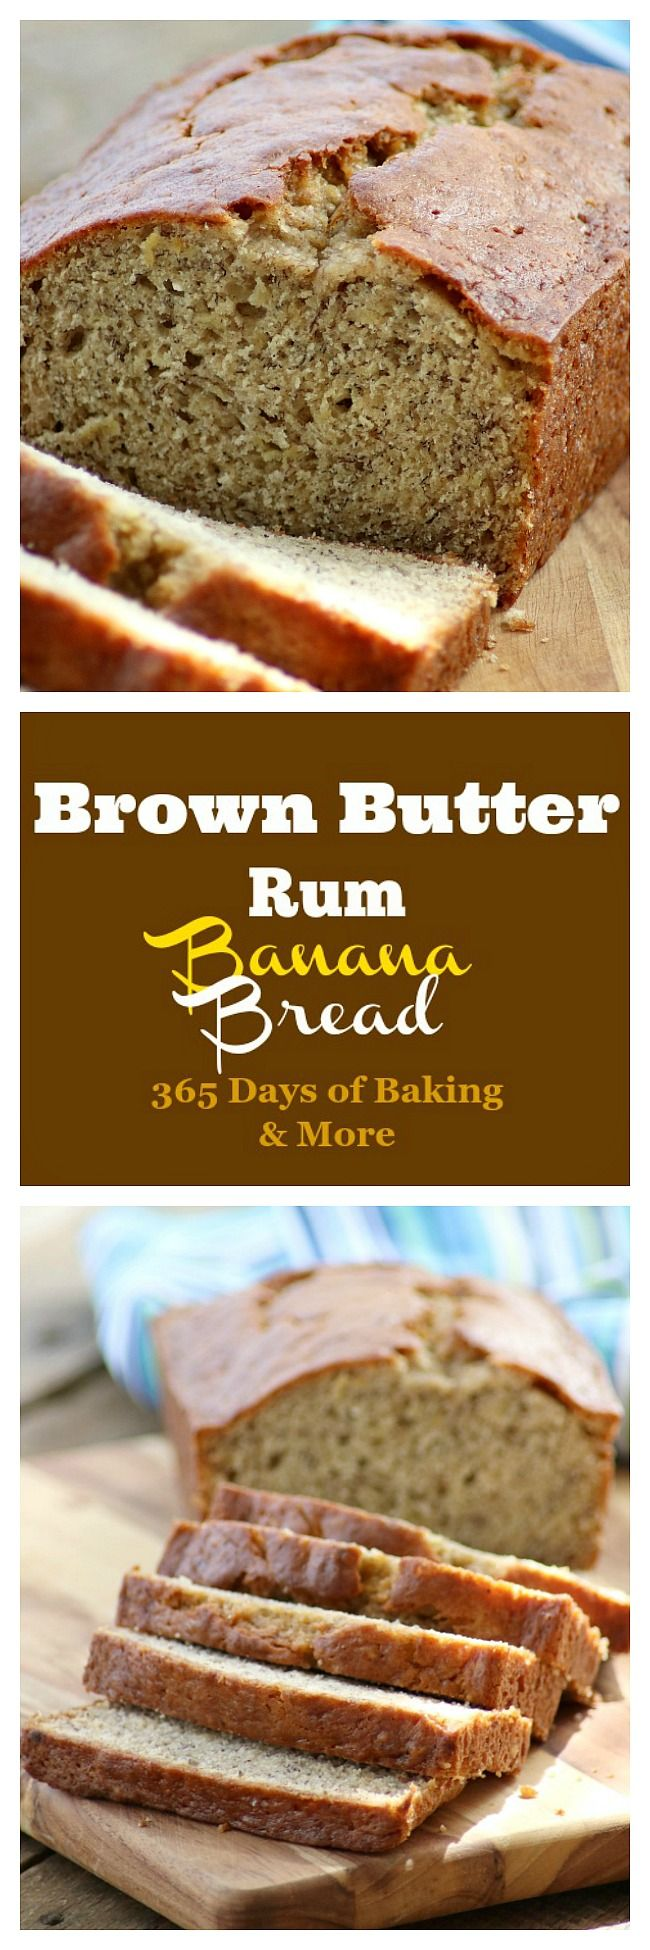 Banana Bread intensified with brown butter and rum.  Comfort food at its' finest!